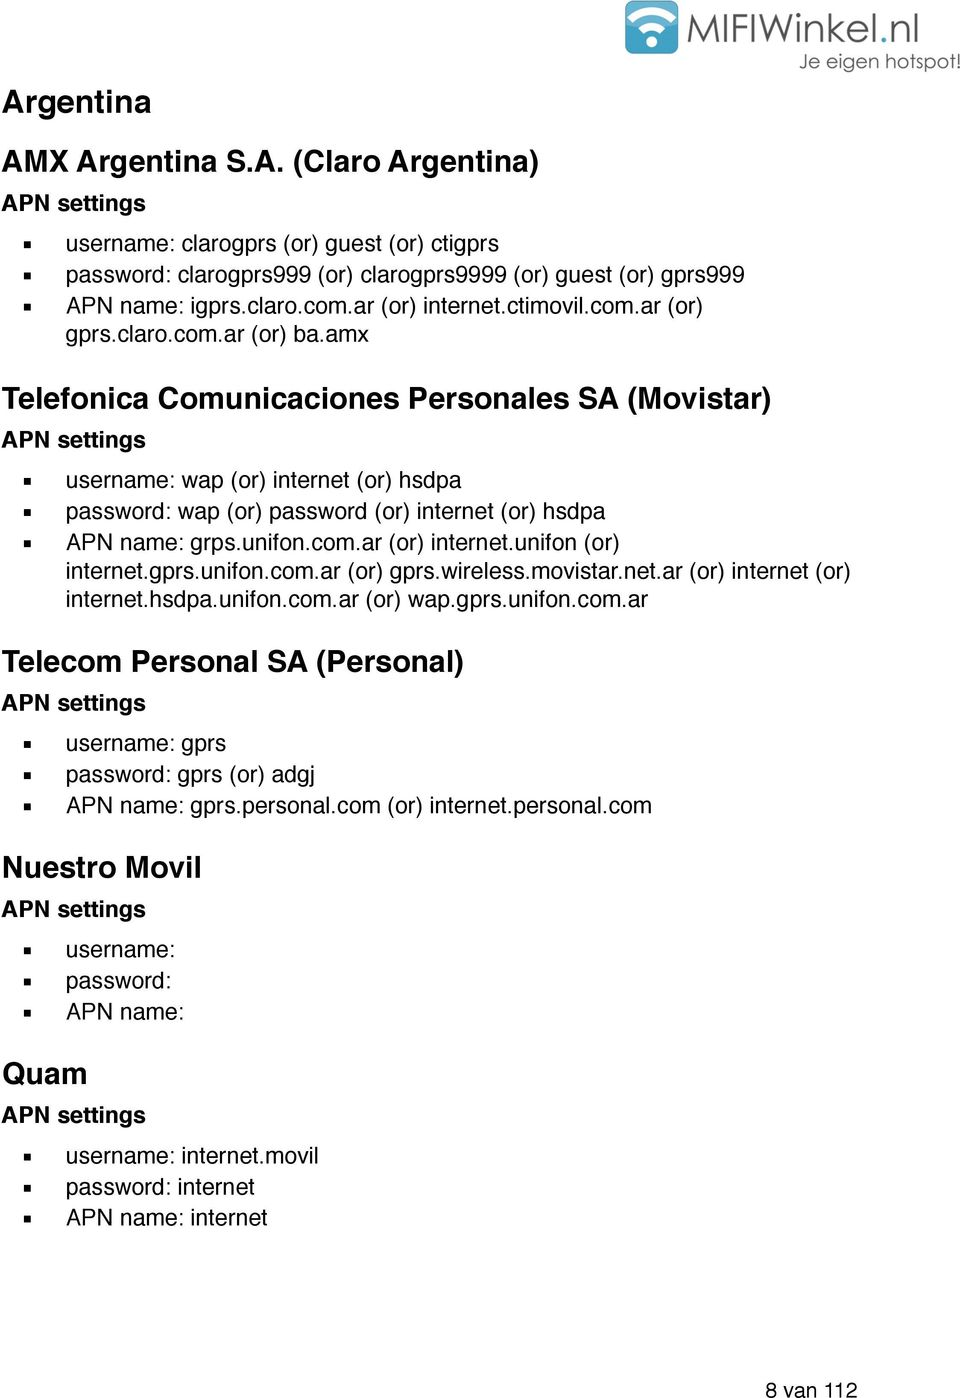 amx Telefonica Comunicaciones Personales SA (Movistar) APN settings username: wap (or) internet (or) hsdpa password: wap (or) password (or) internet (or) hsdpa APN name: grps.unifon.com.